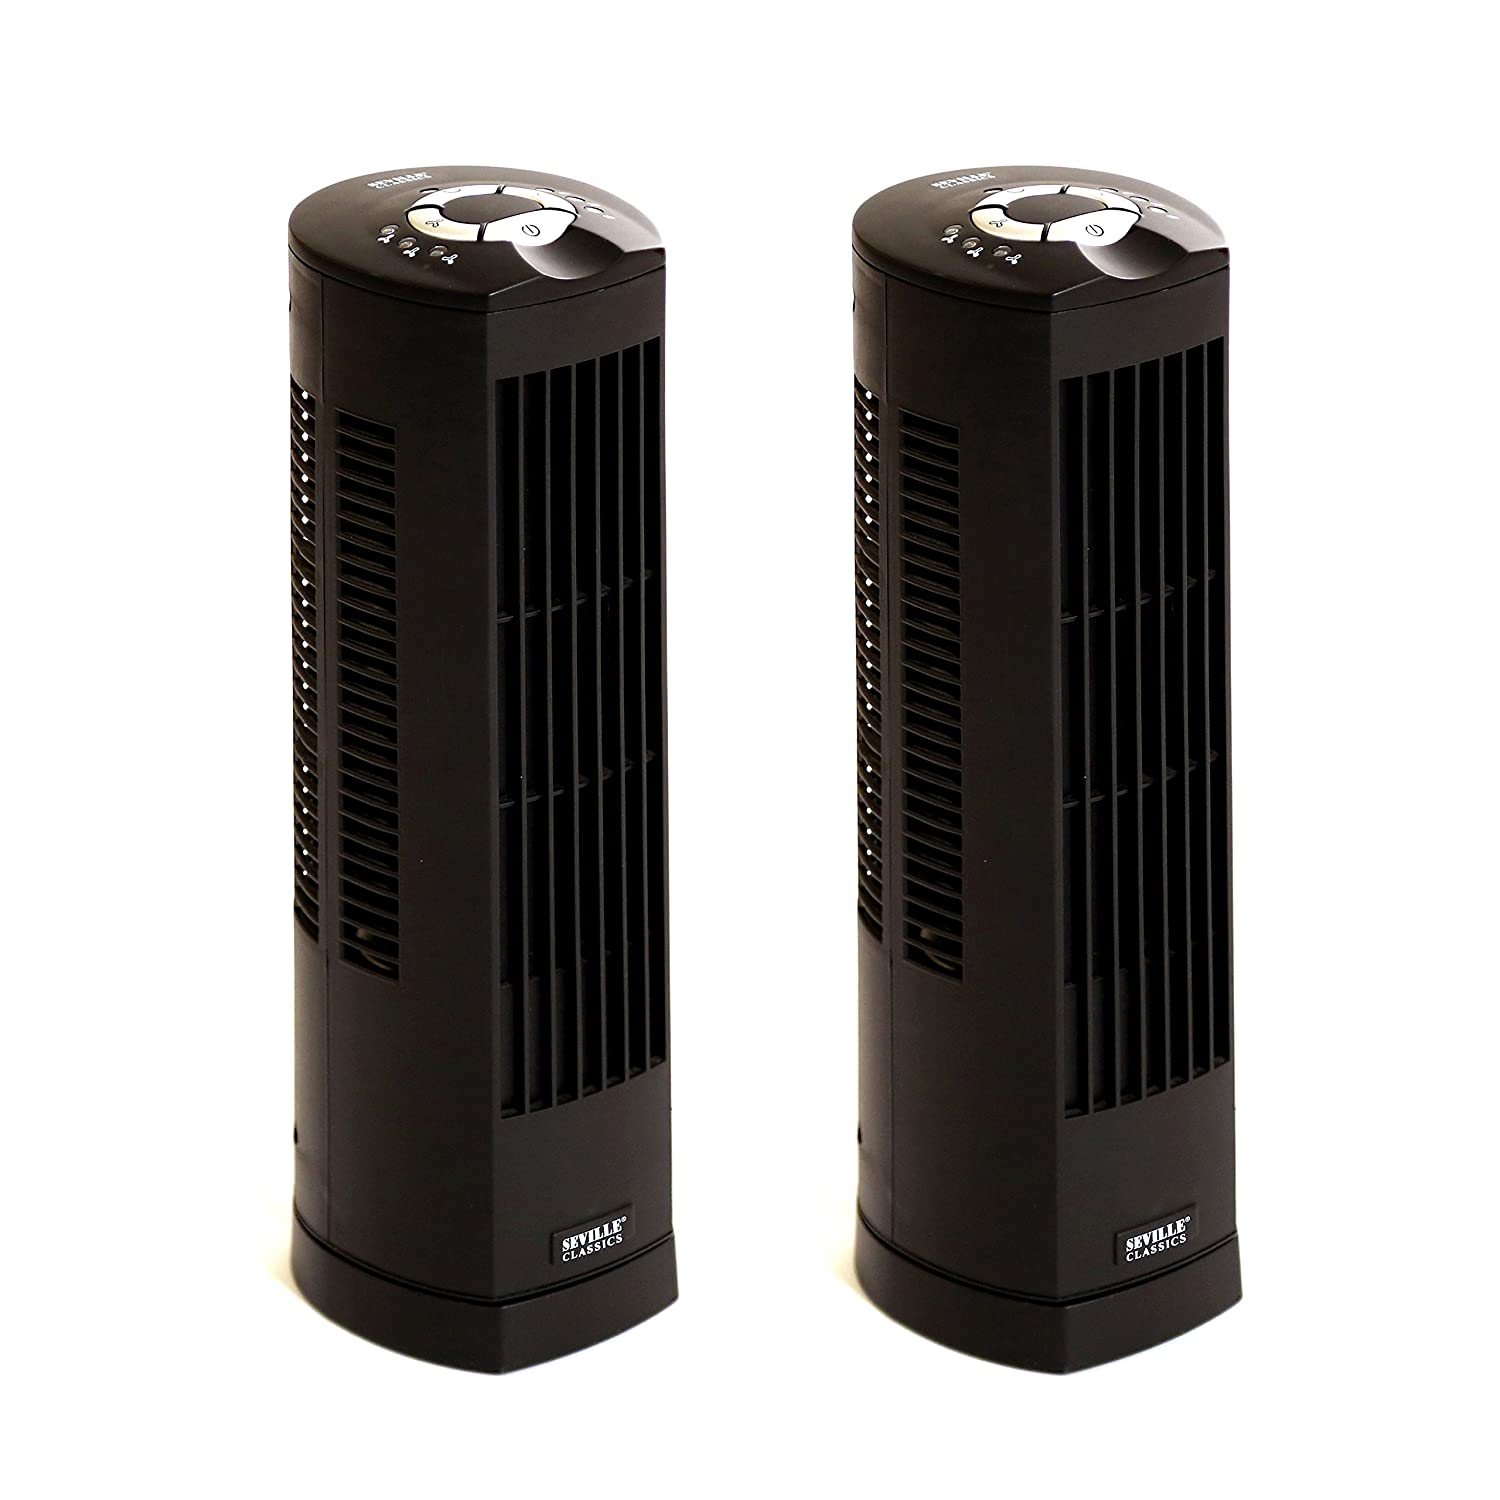 Seville Classics UltraSlimline 17 in. Oscillating Personal Tower Fan (2-Pack), Black EHF10123B